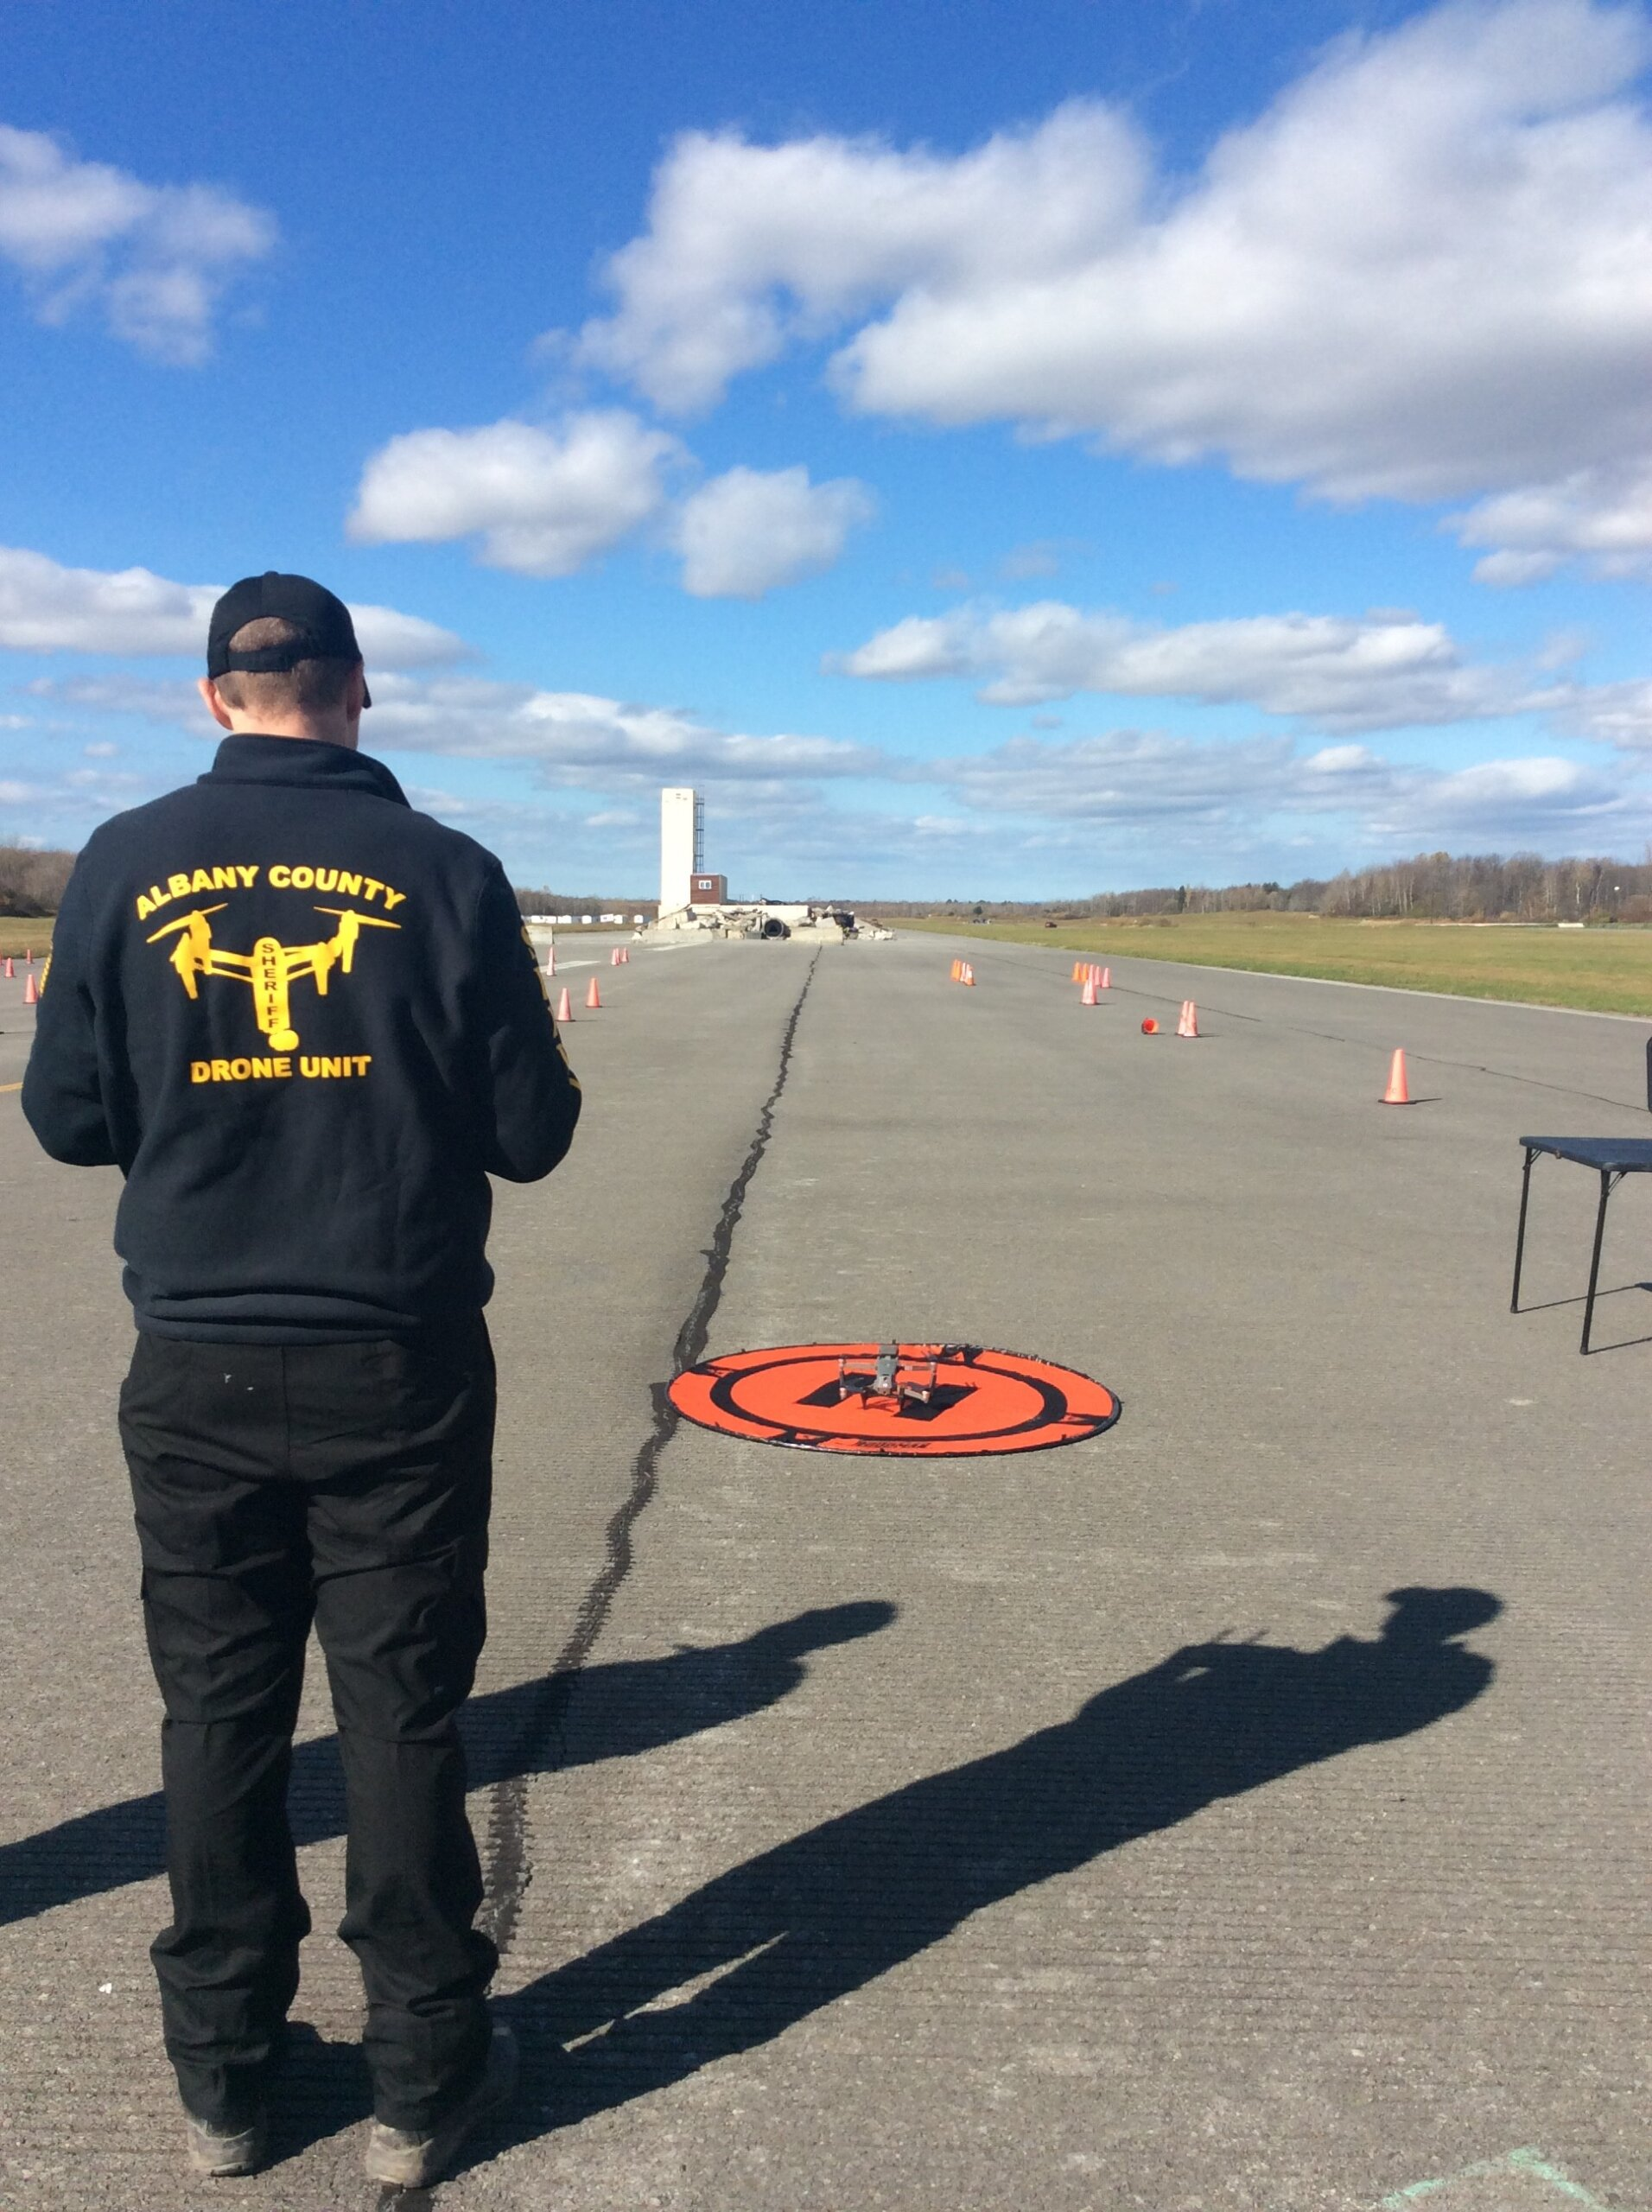 Albany County Drone Unit